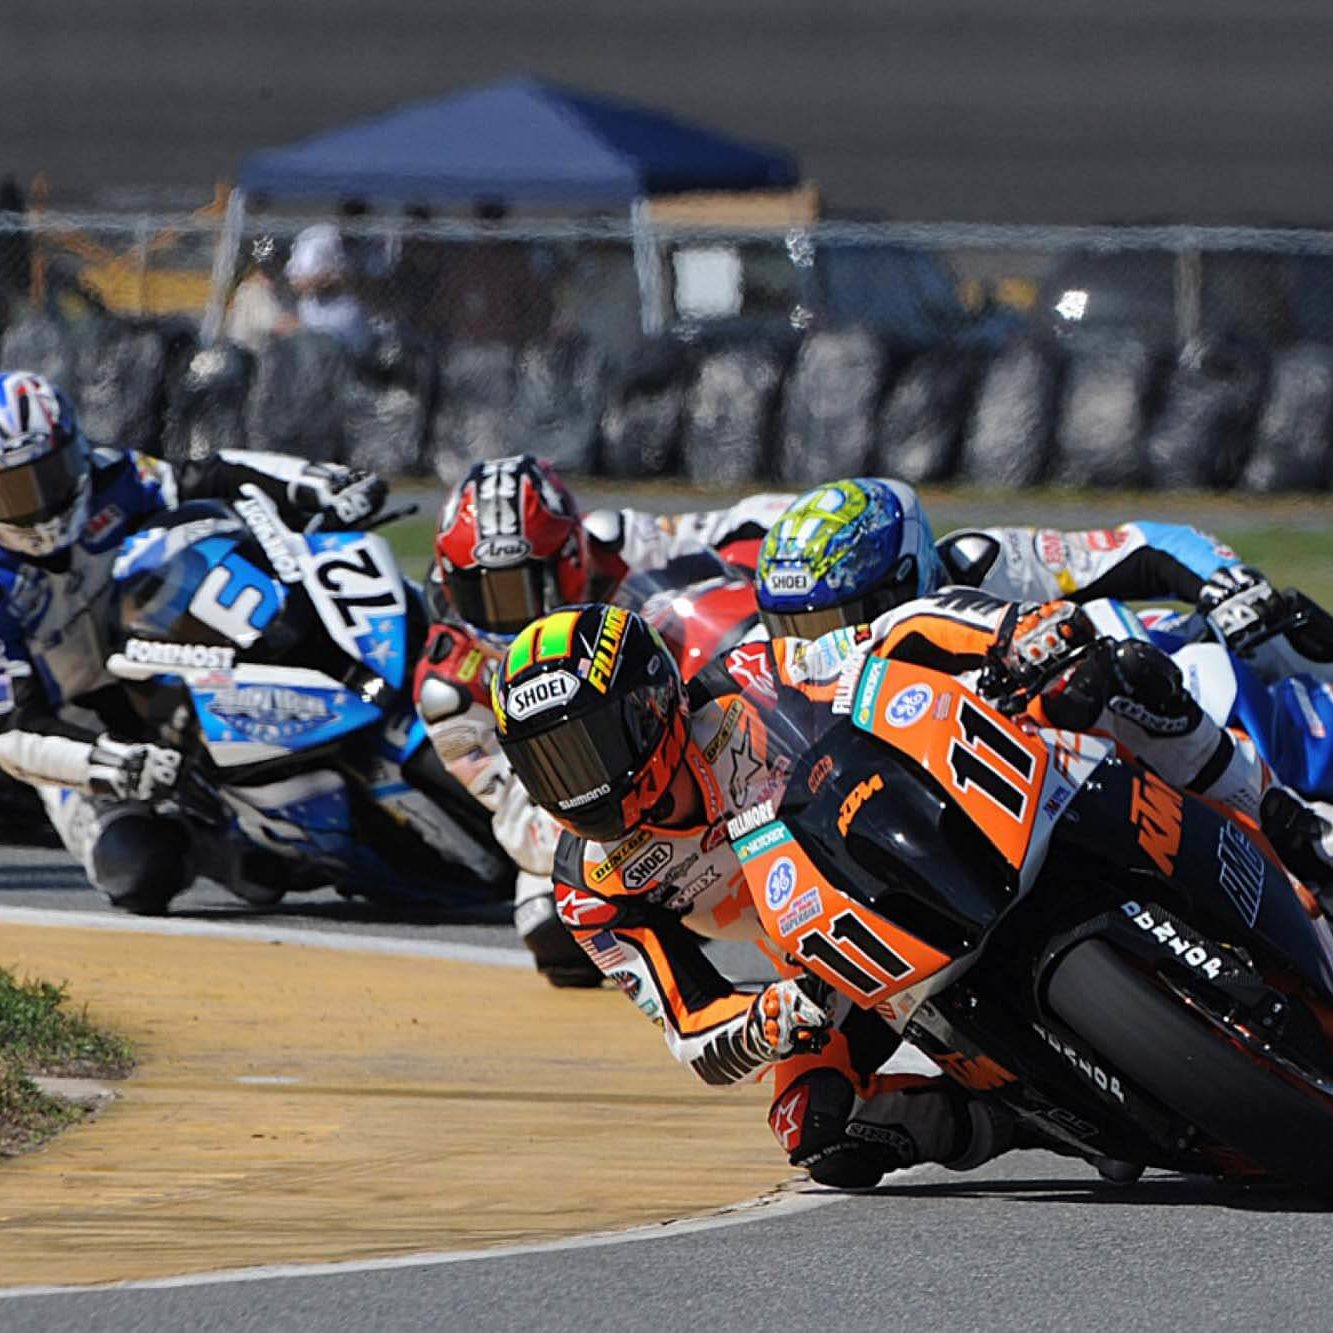 Motorcycle Racing Image